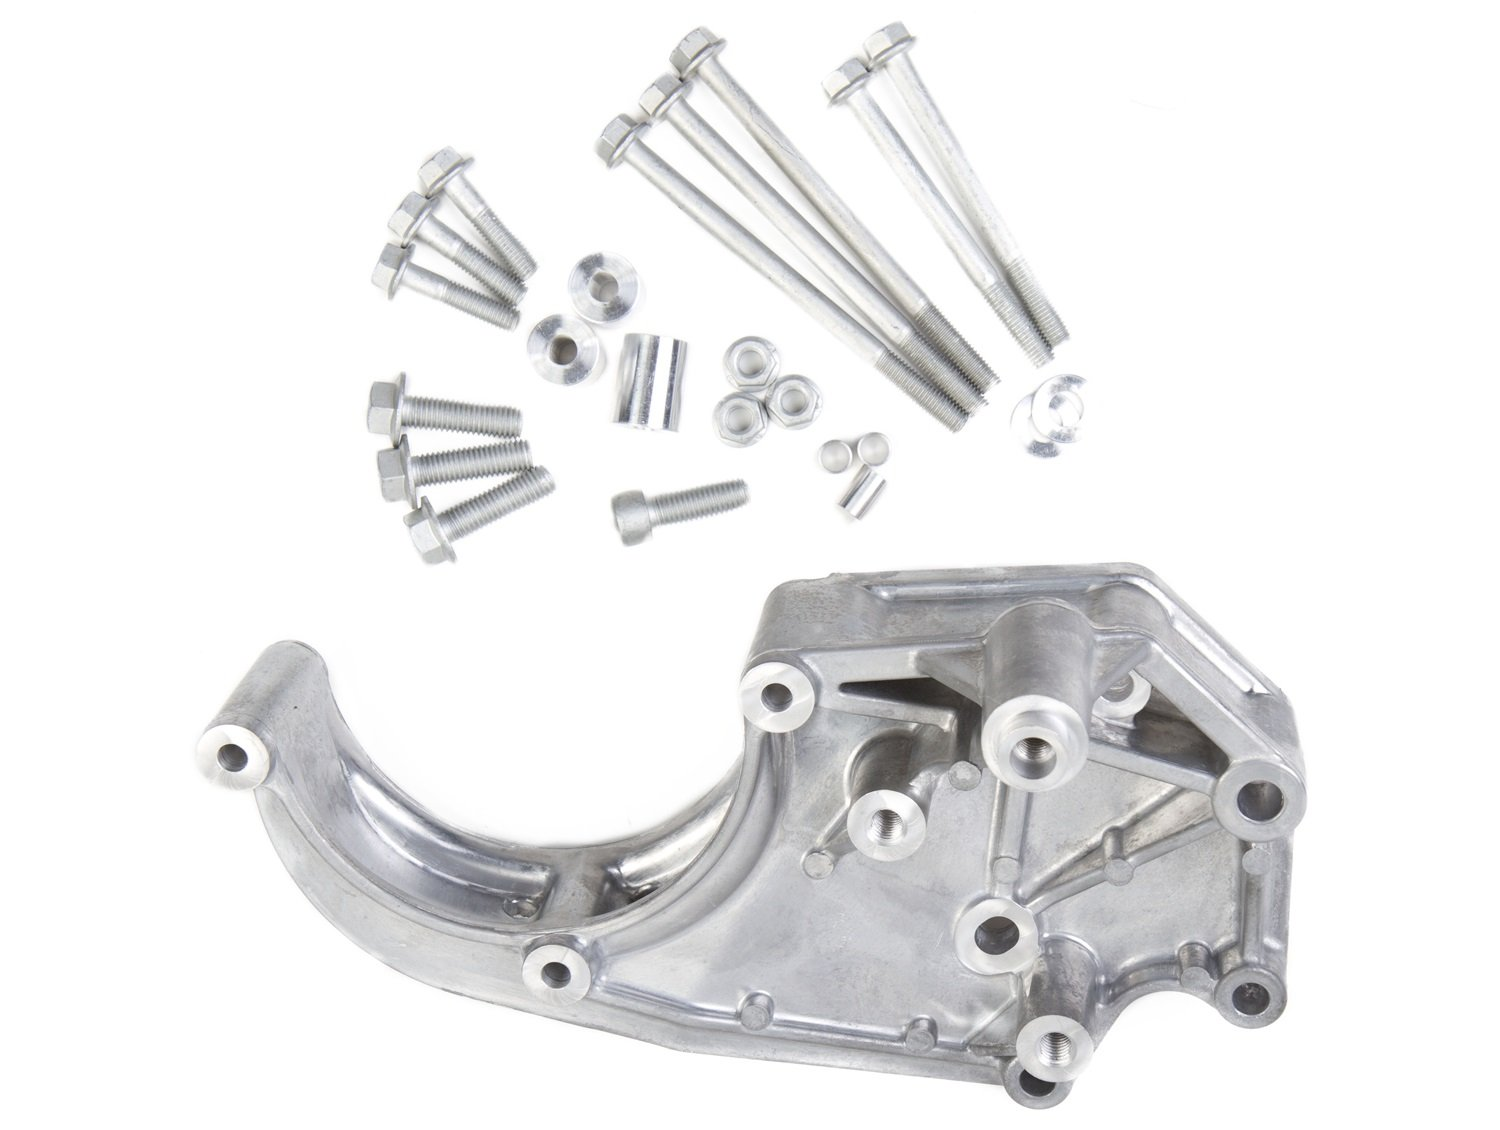 Holley 20-134 LS Accessory Drive Bracket Kit by Holley (Image #1)